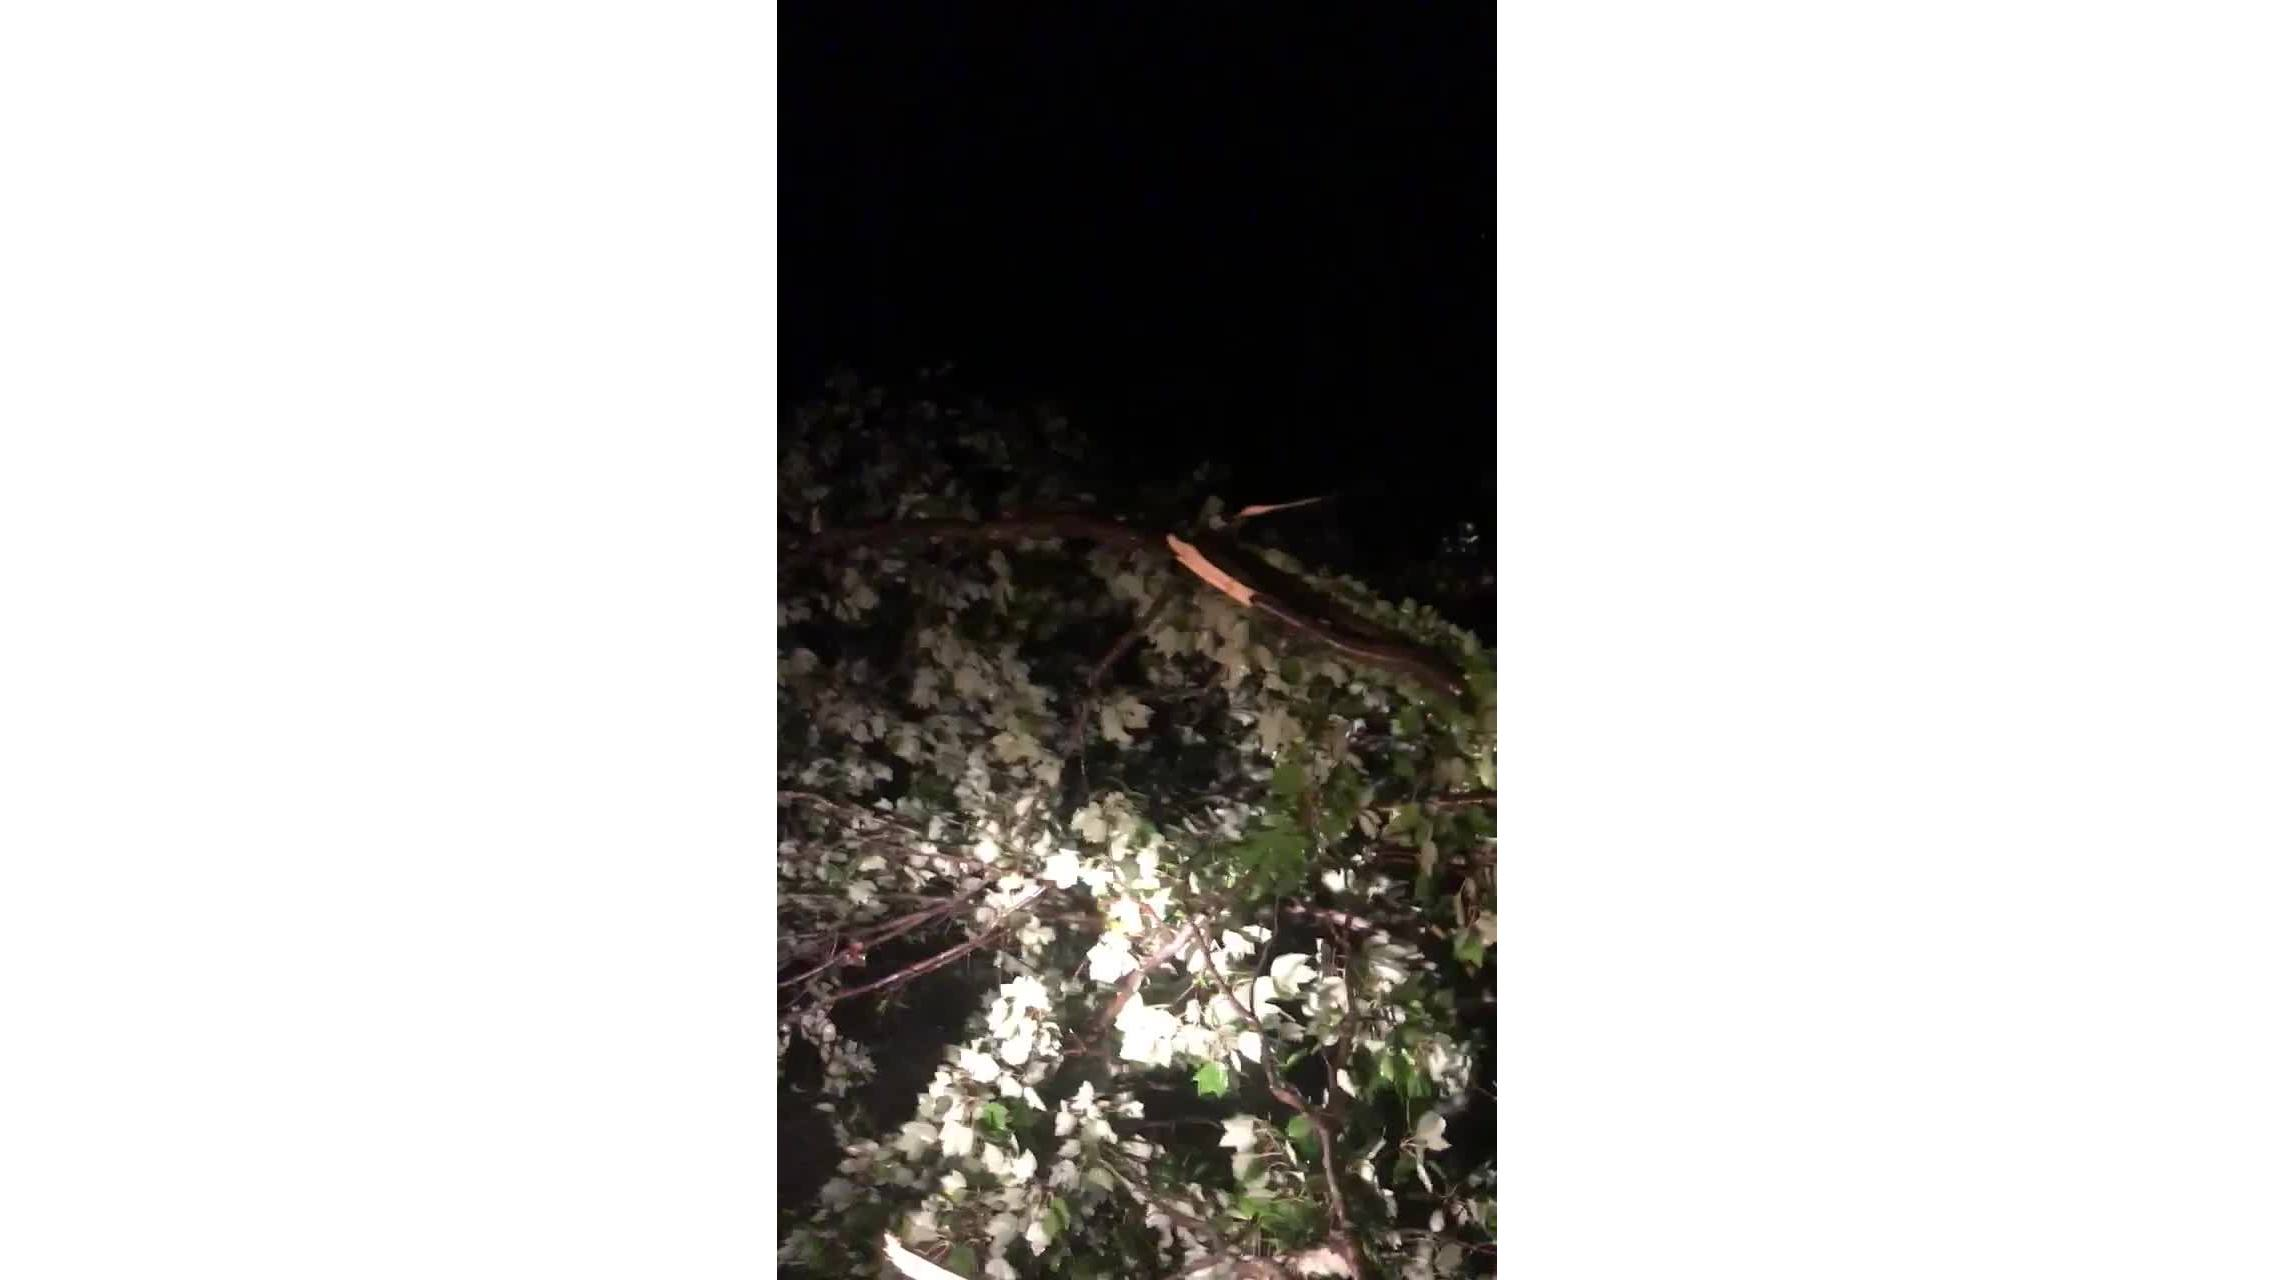 Storm_damage_from_Michael_in_Kristiansan_0_20181012010419